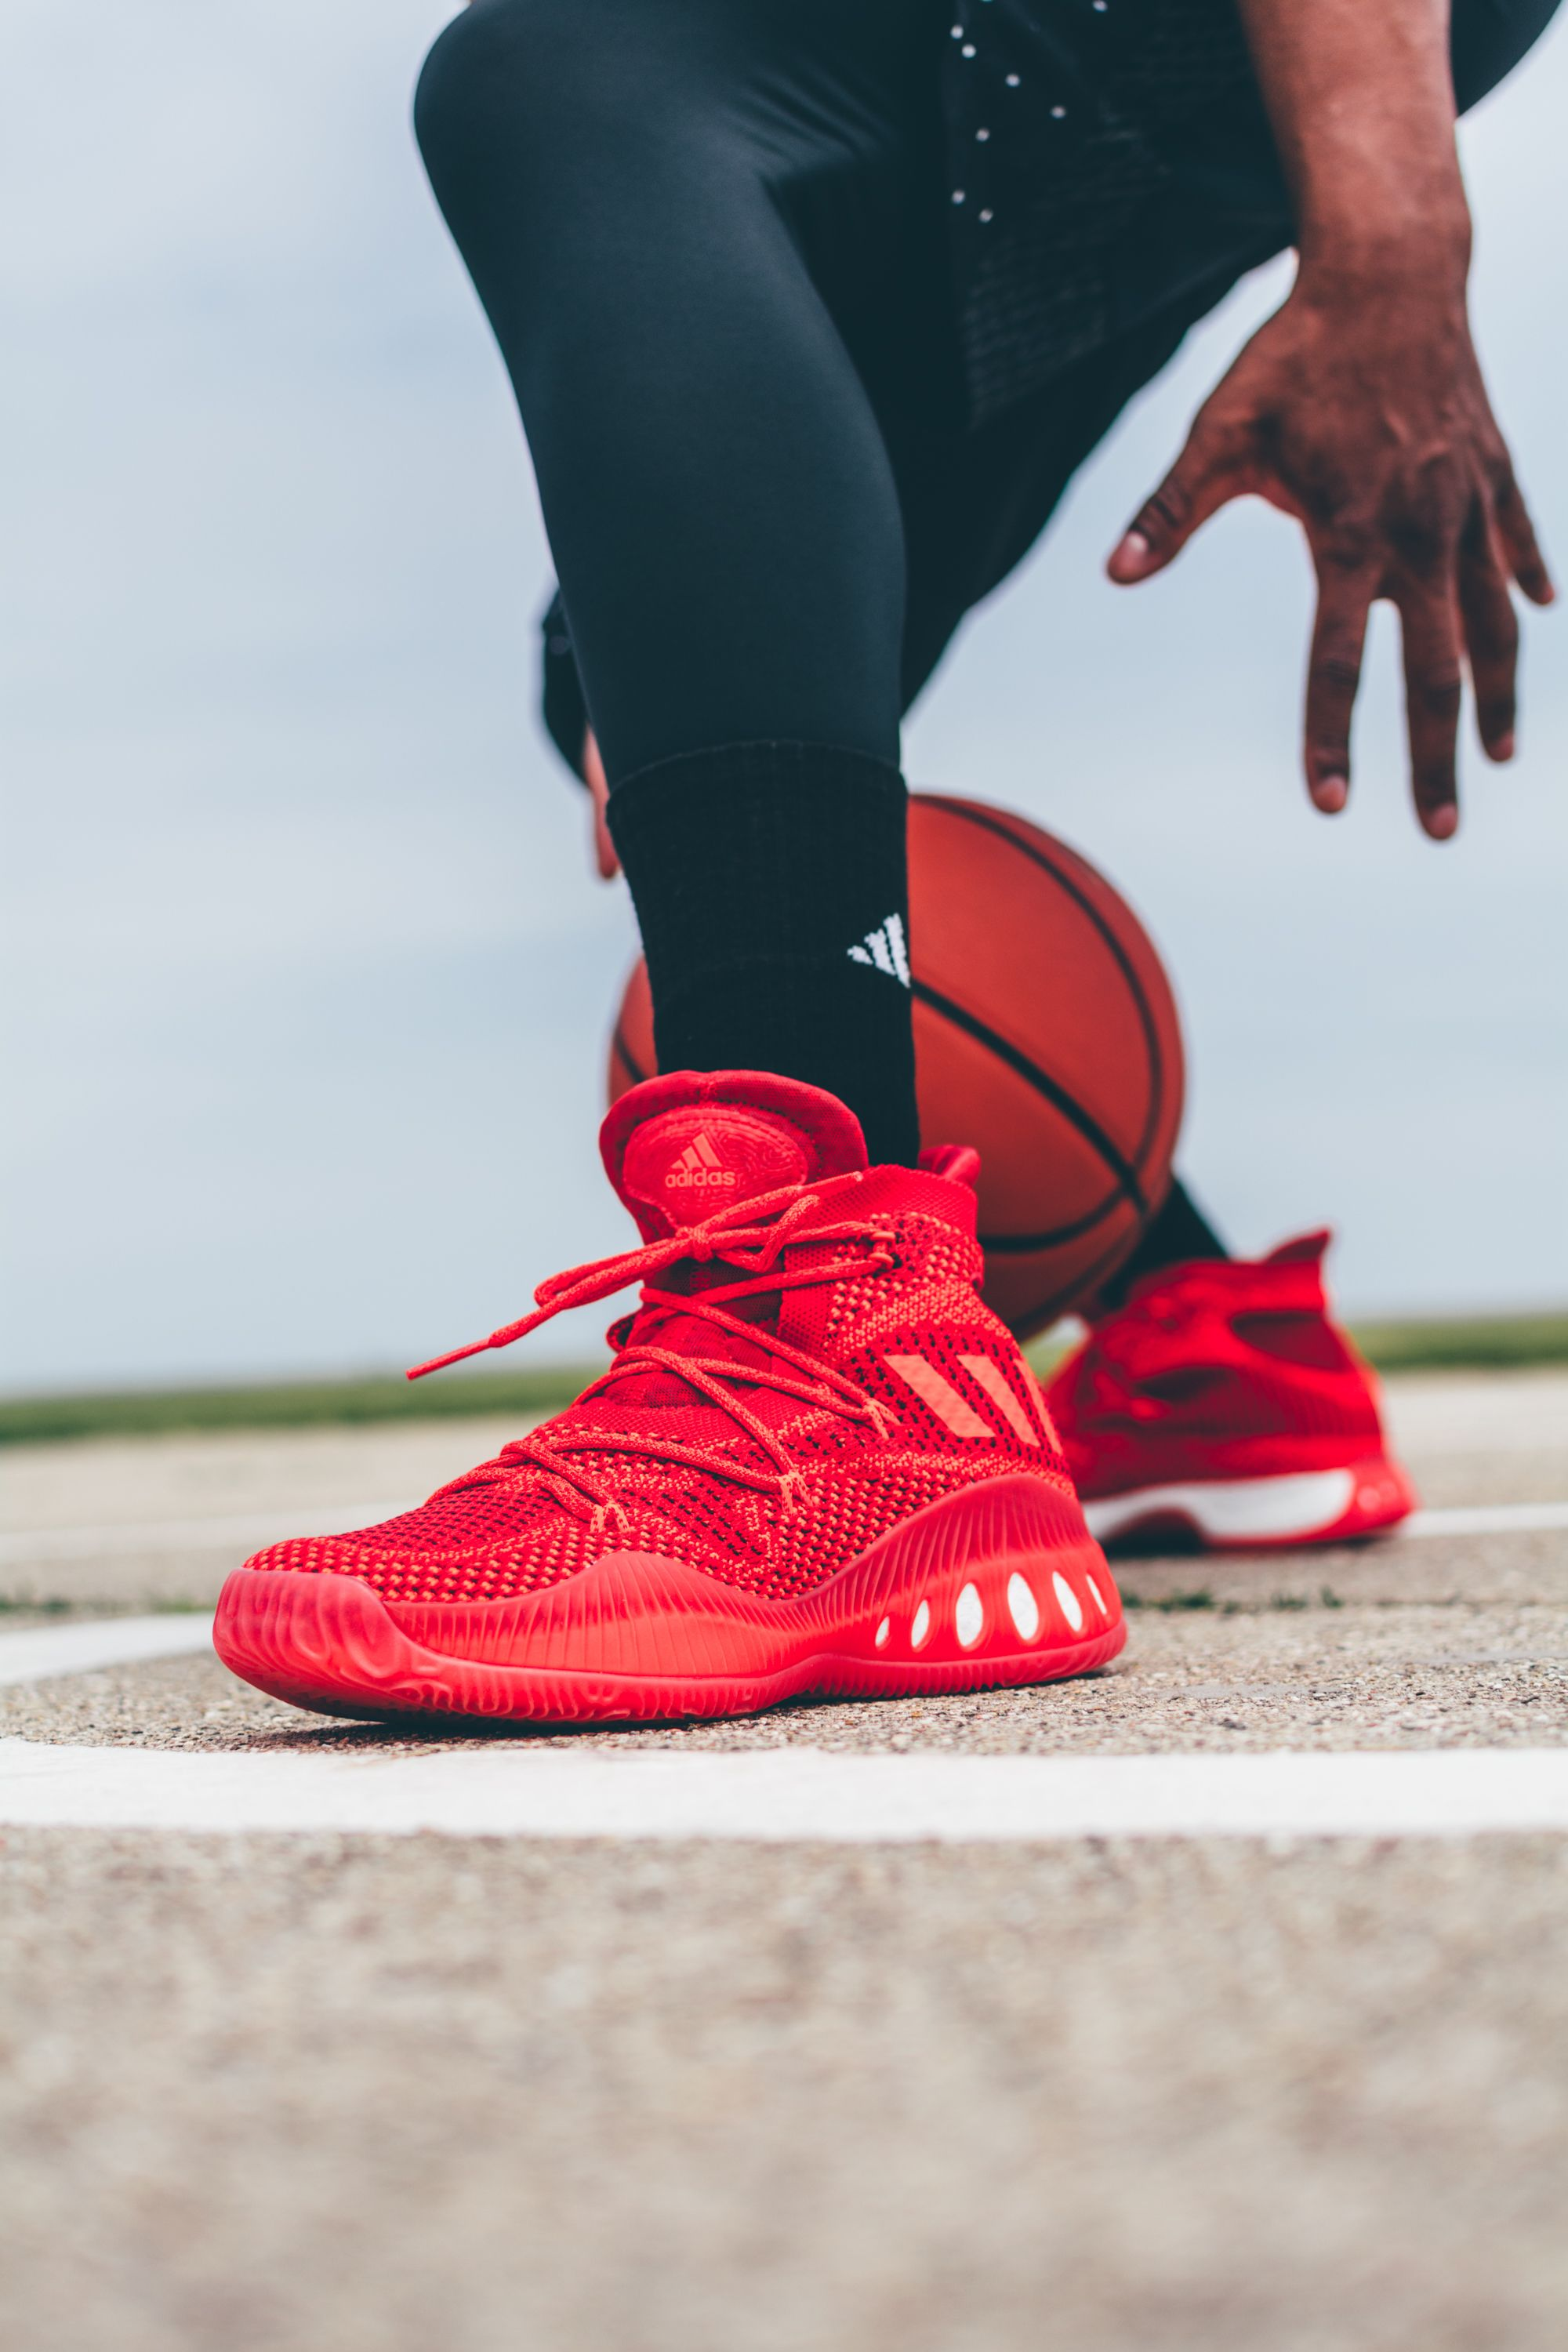 finest selection 966b2 671a6 Designed with elite athletes in mind, the adidas Crazy Explosive is built  for the games most explosive players.